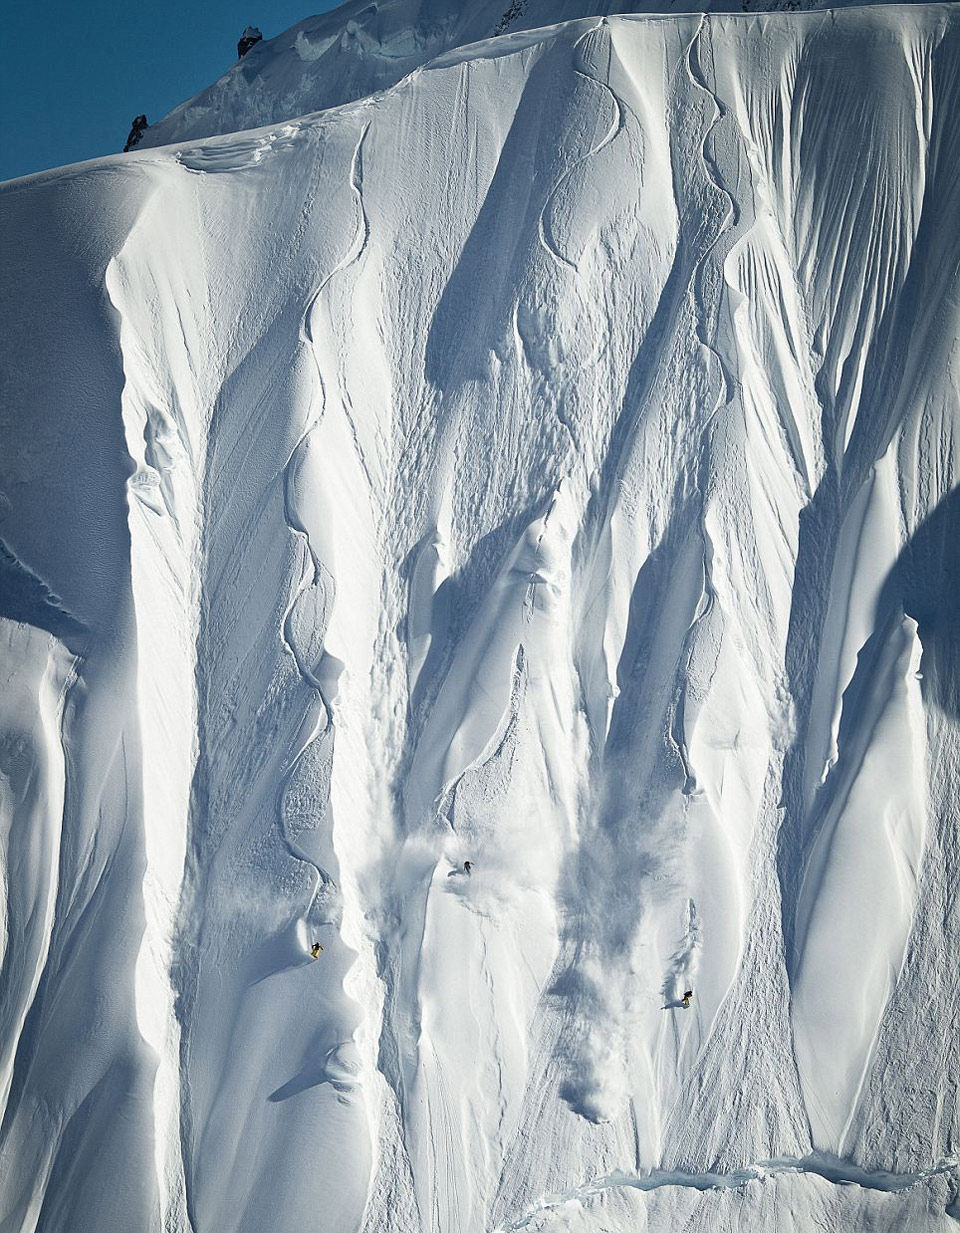 8first-snowboarders-to-conquer-vertical-alaskan-slope